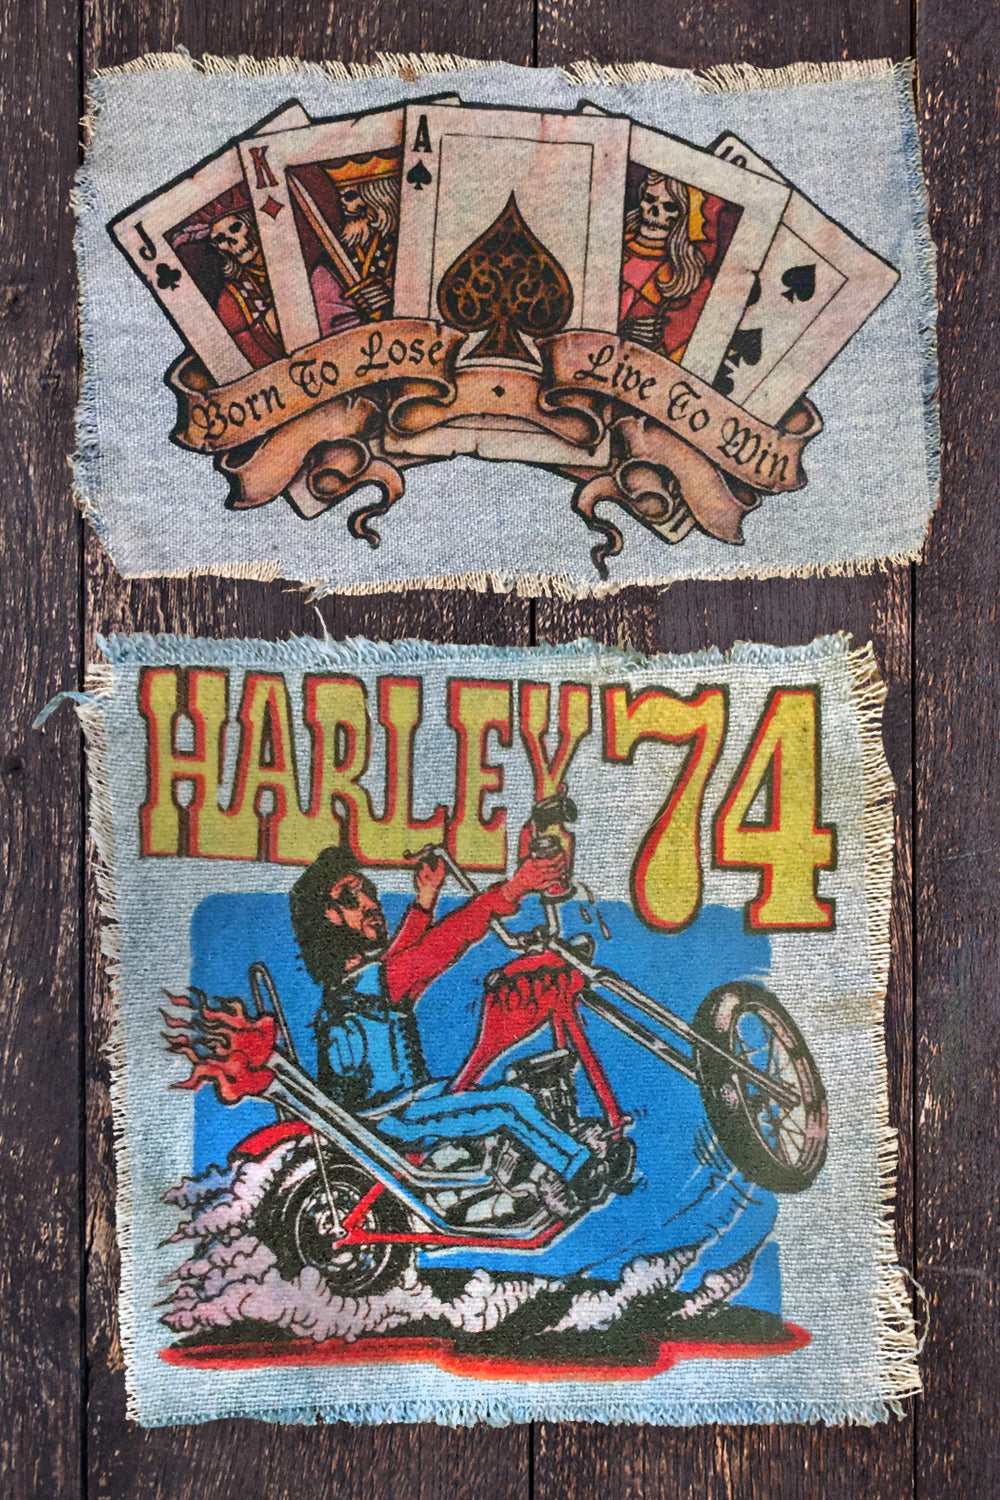 Born To Lose // Harley 74 Denim Patches